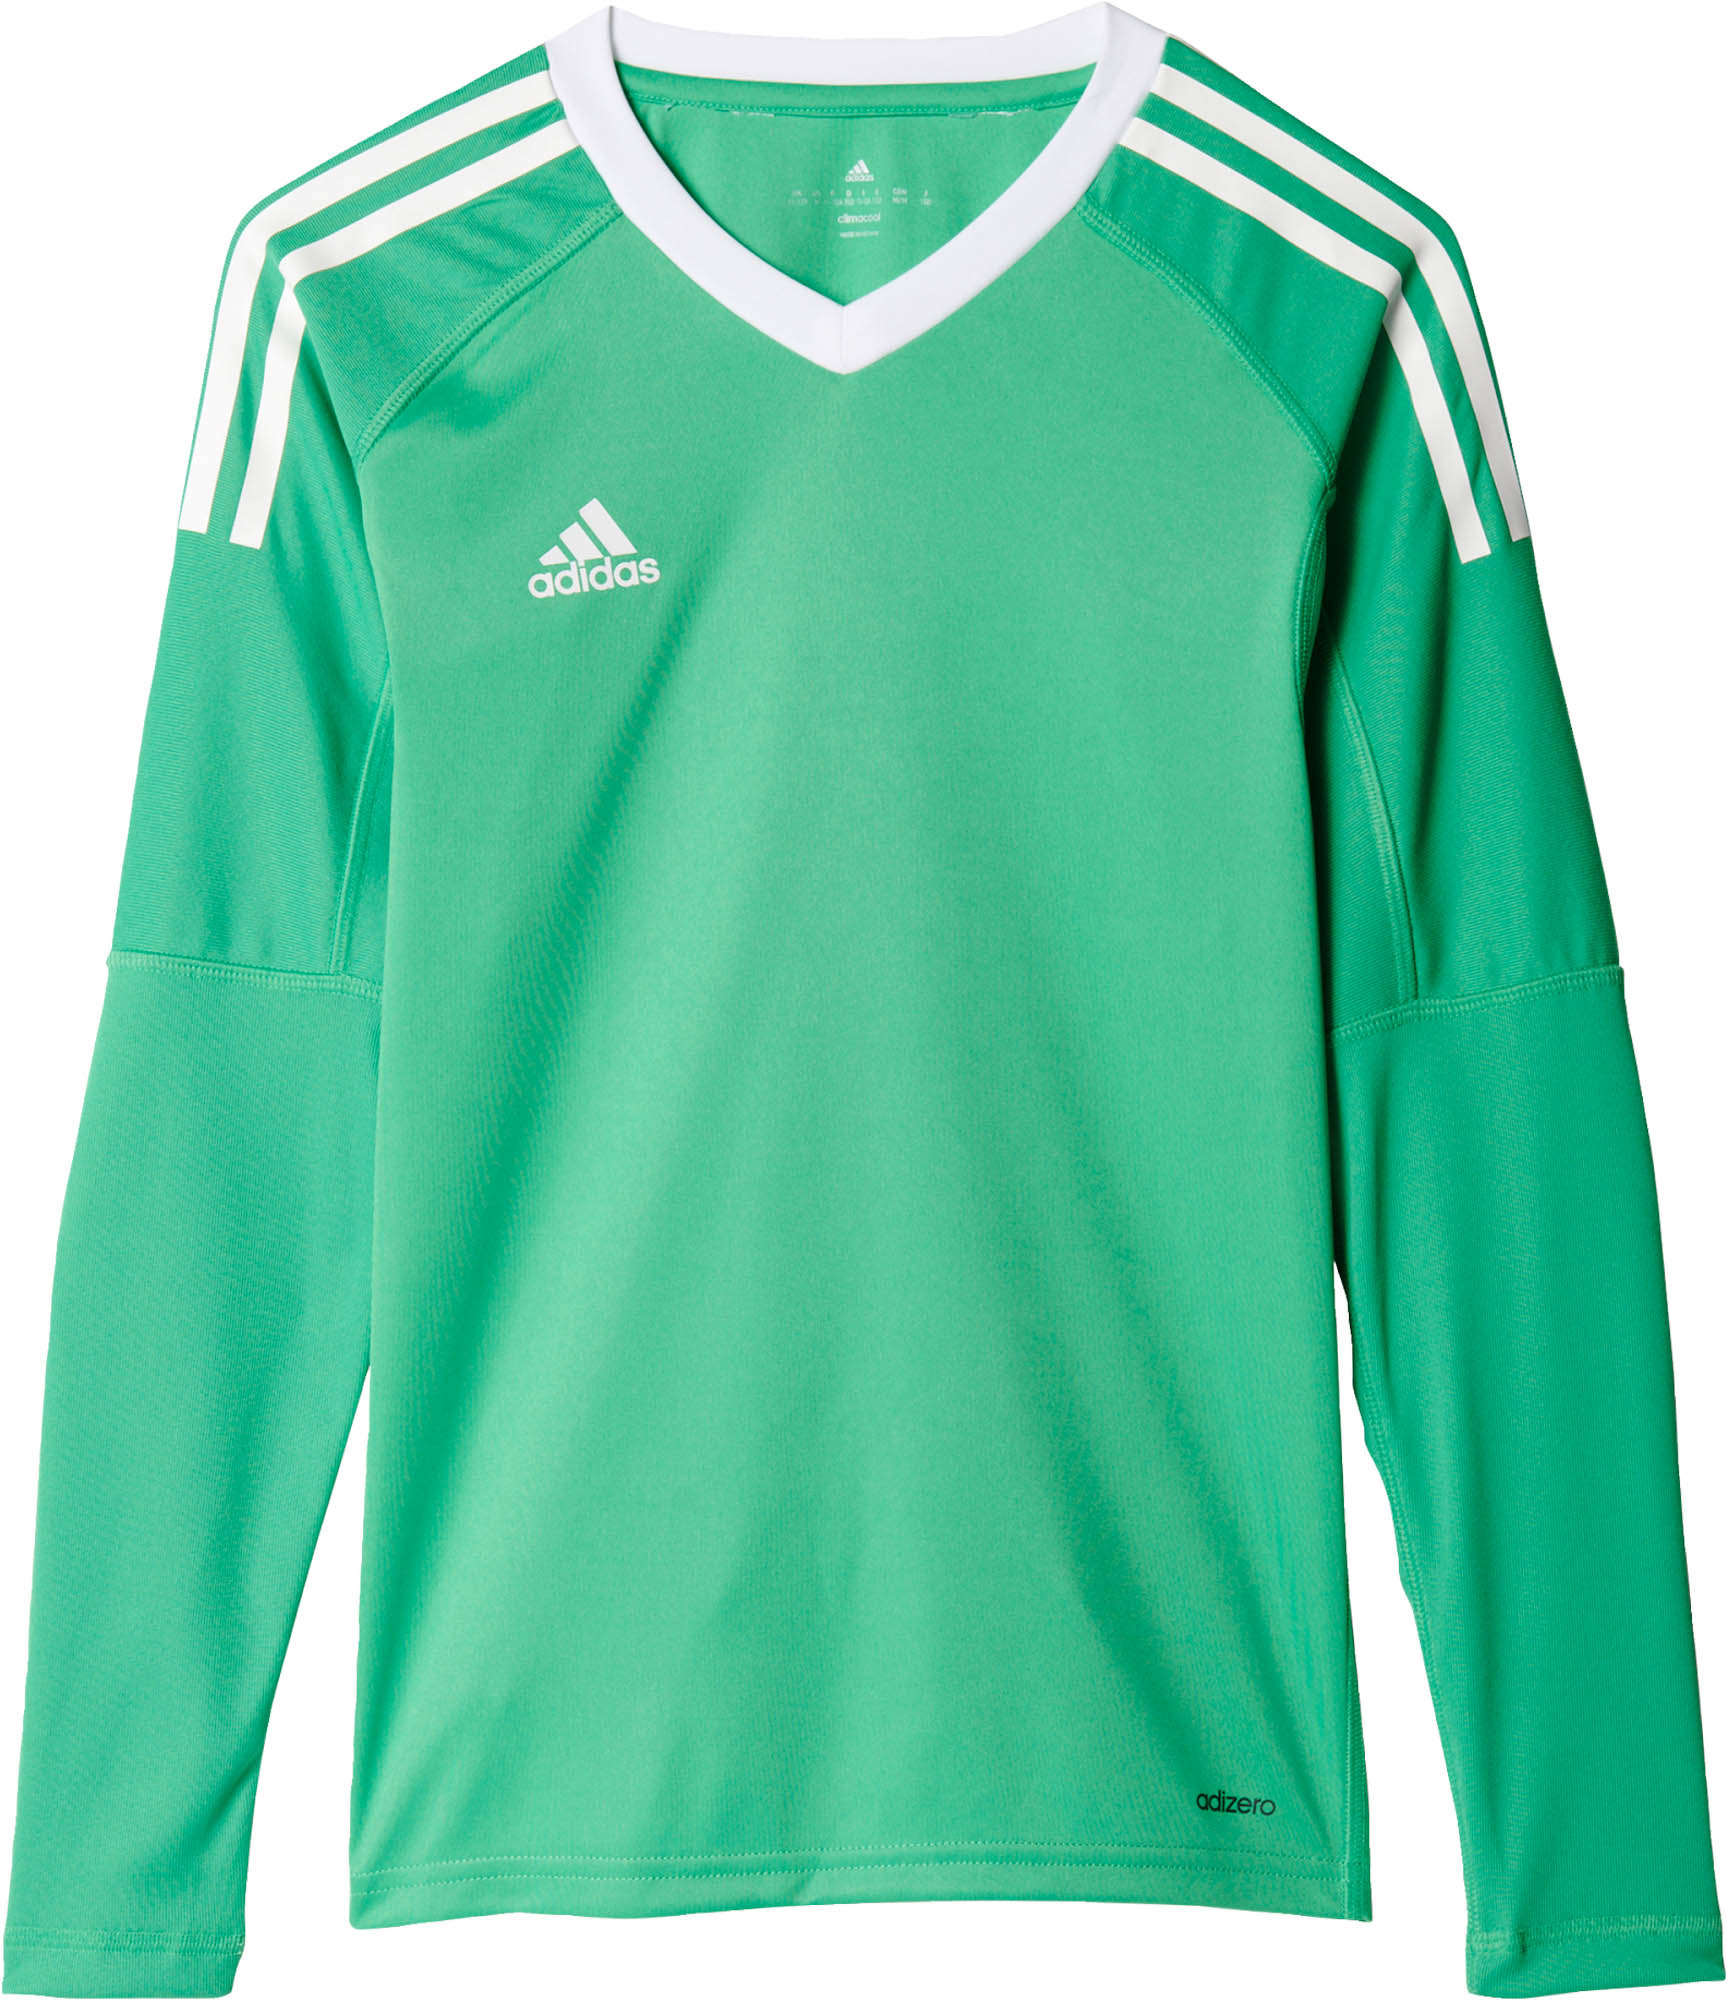 sale retailer baaca 26107 adidas Kids Revigo 17 Goalkeeper Jersey – Energy Green White